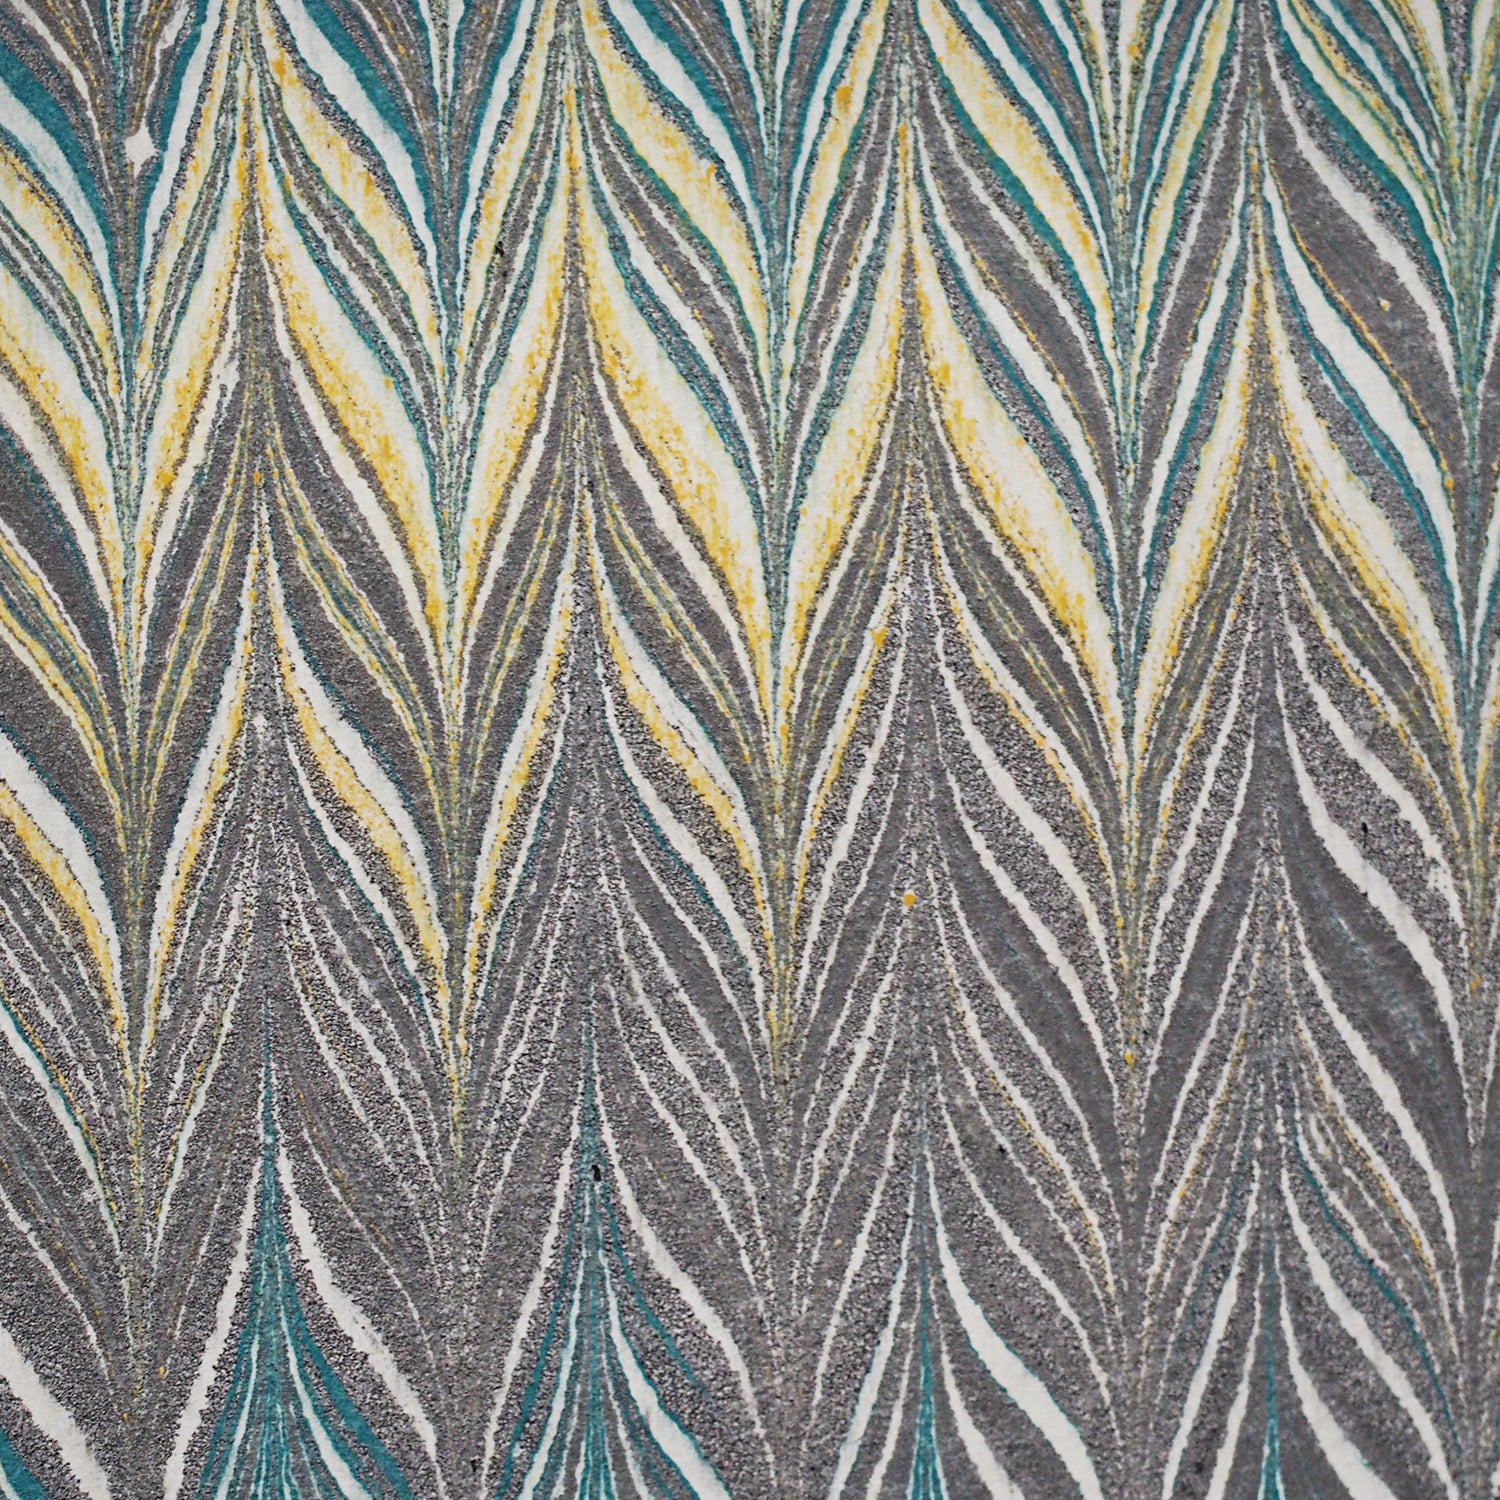 Marbled paper / Green